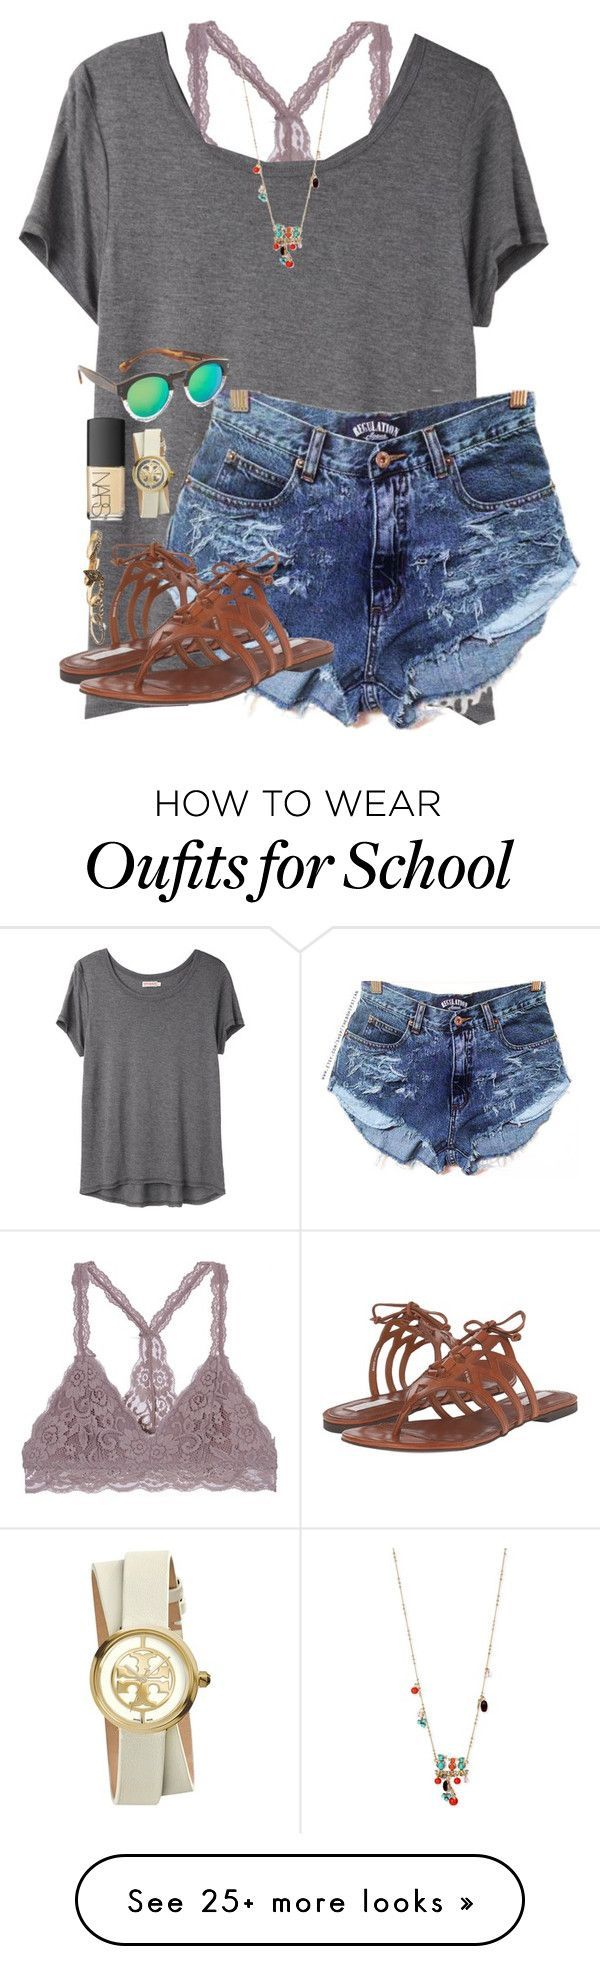 Love having no school by scpprep on Polyvore featuring Organic by John Patrick, Cole Haan, Illesteva, Betsey Johnson, NARS Cosmetics, Tory Burch and Wet Seal